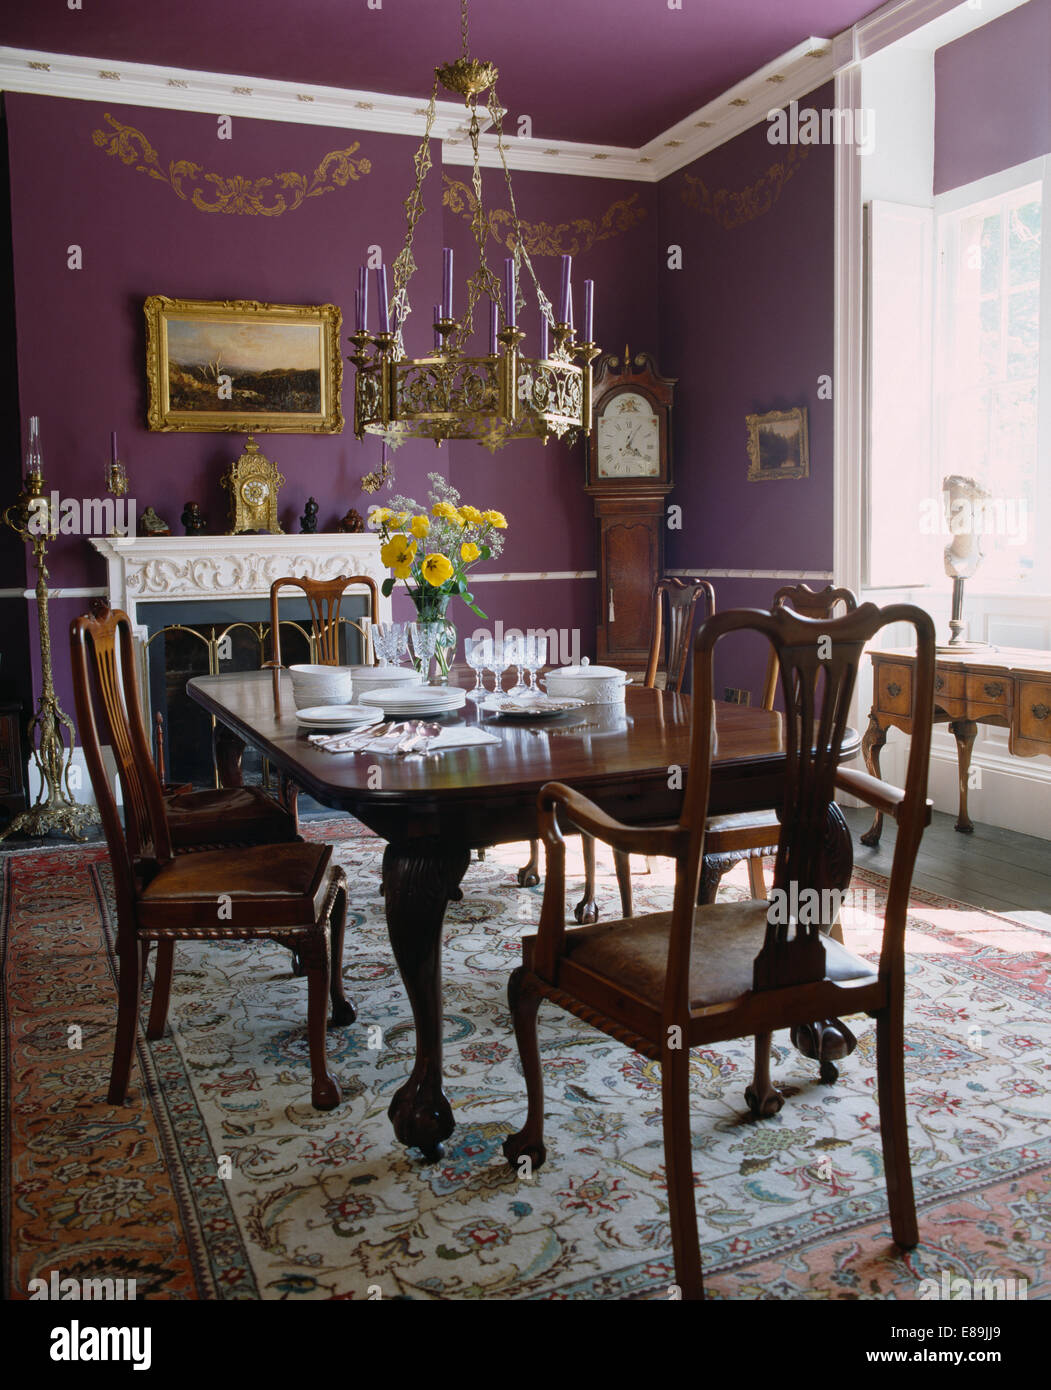 Metal light above antique mahogany chairs and table set for lunch in  traditional purple dining room with oriental carpet - Metal Light Above Antique Mahogany Chairs And Table Set For Lunch In